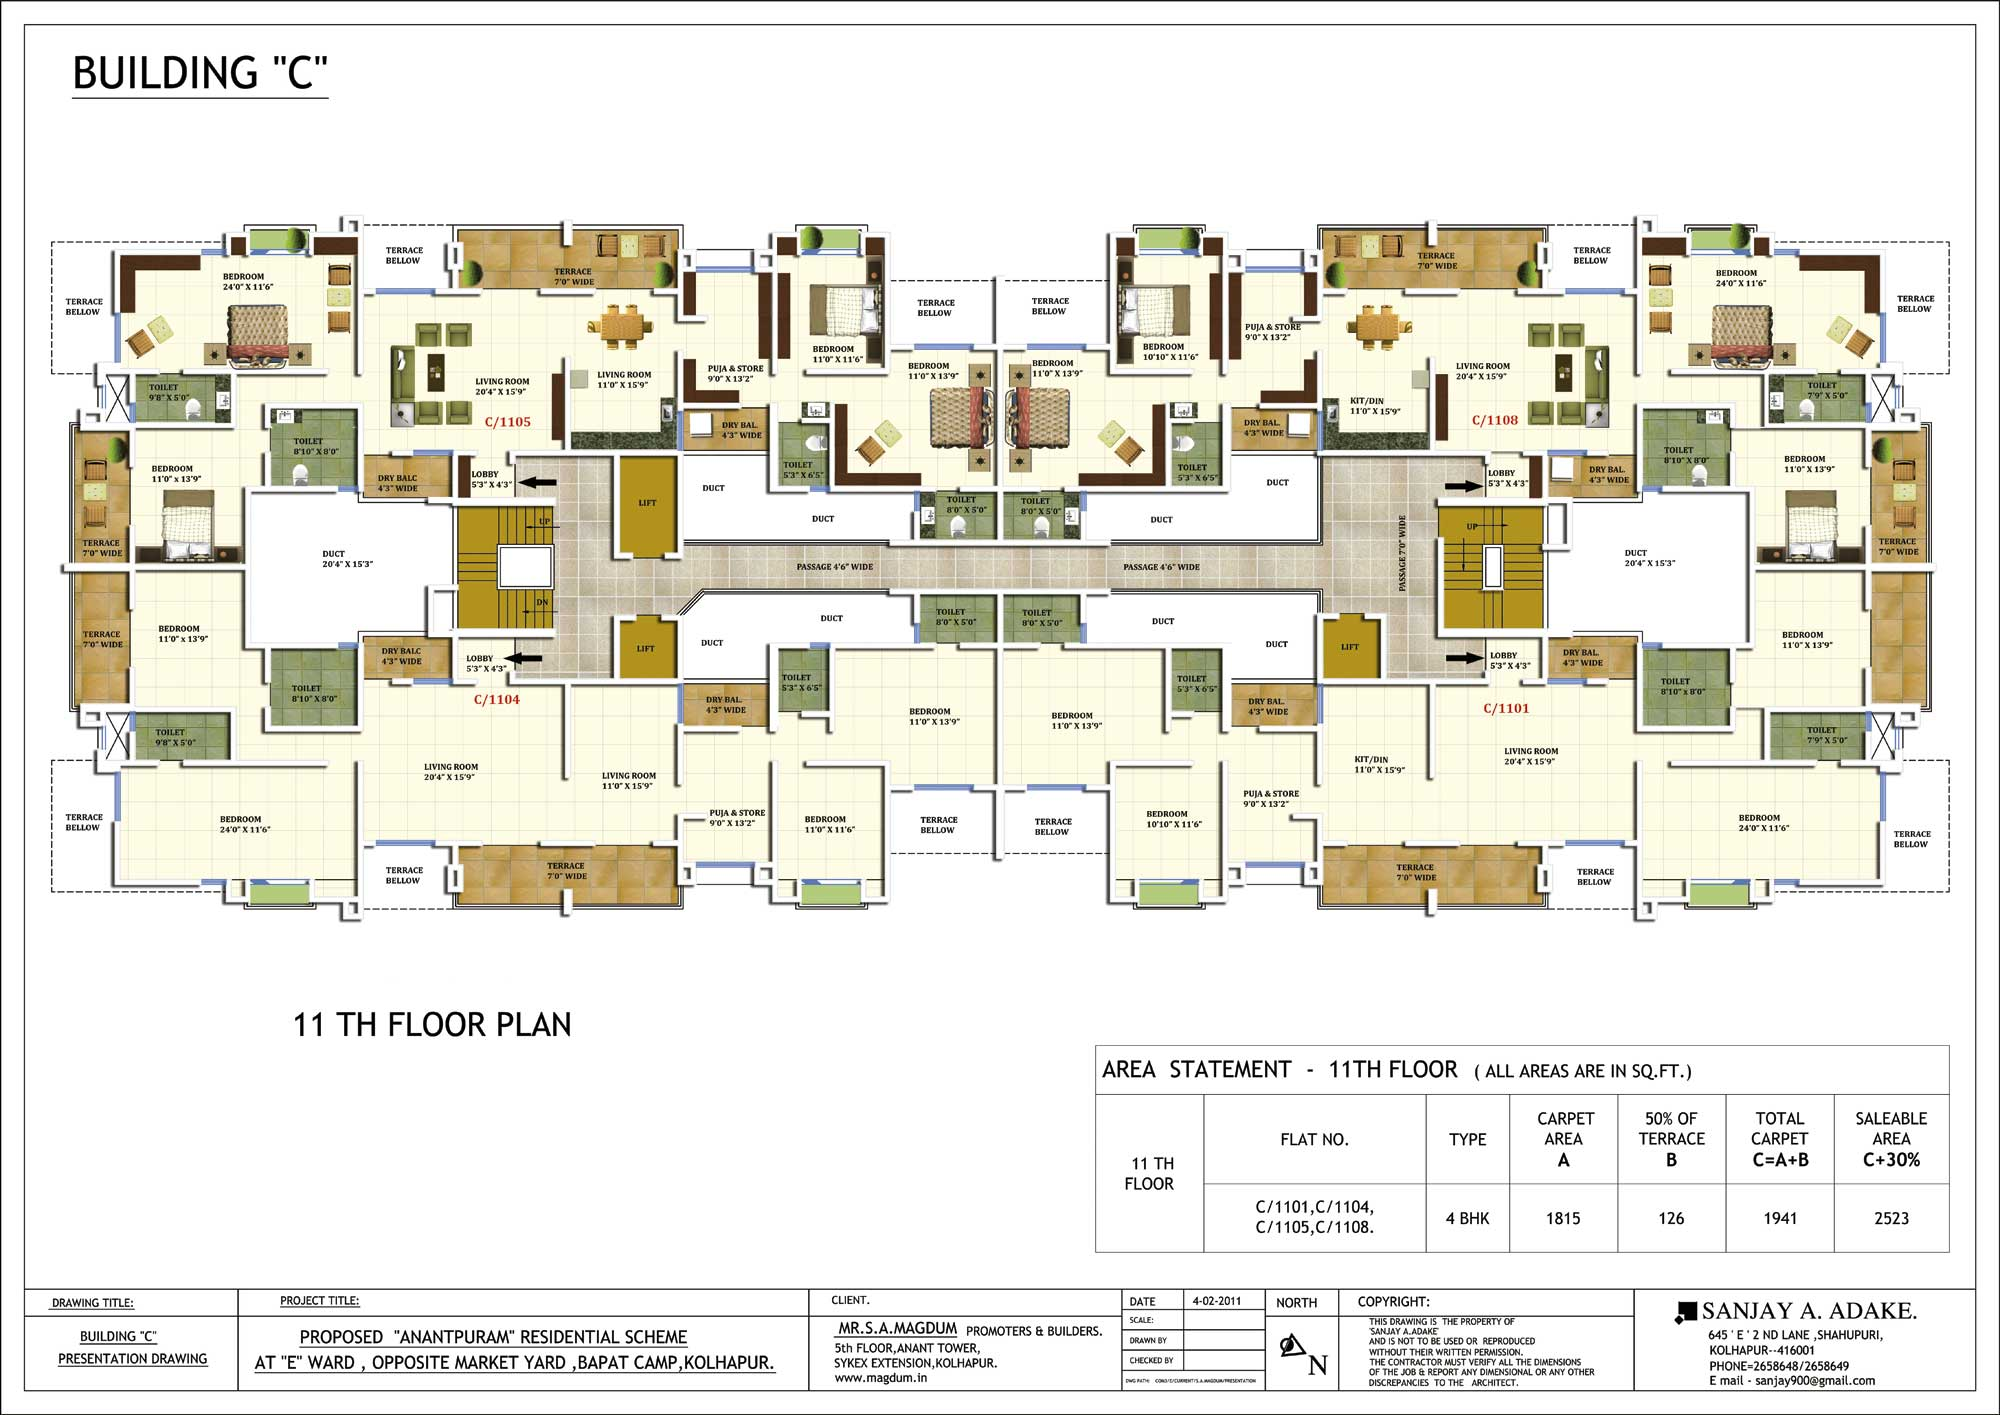 9Th Floor Plan » 10Th Floor Plan » 11Th Floor Plan »